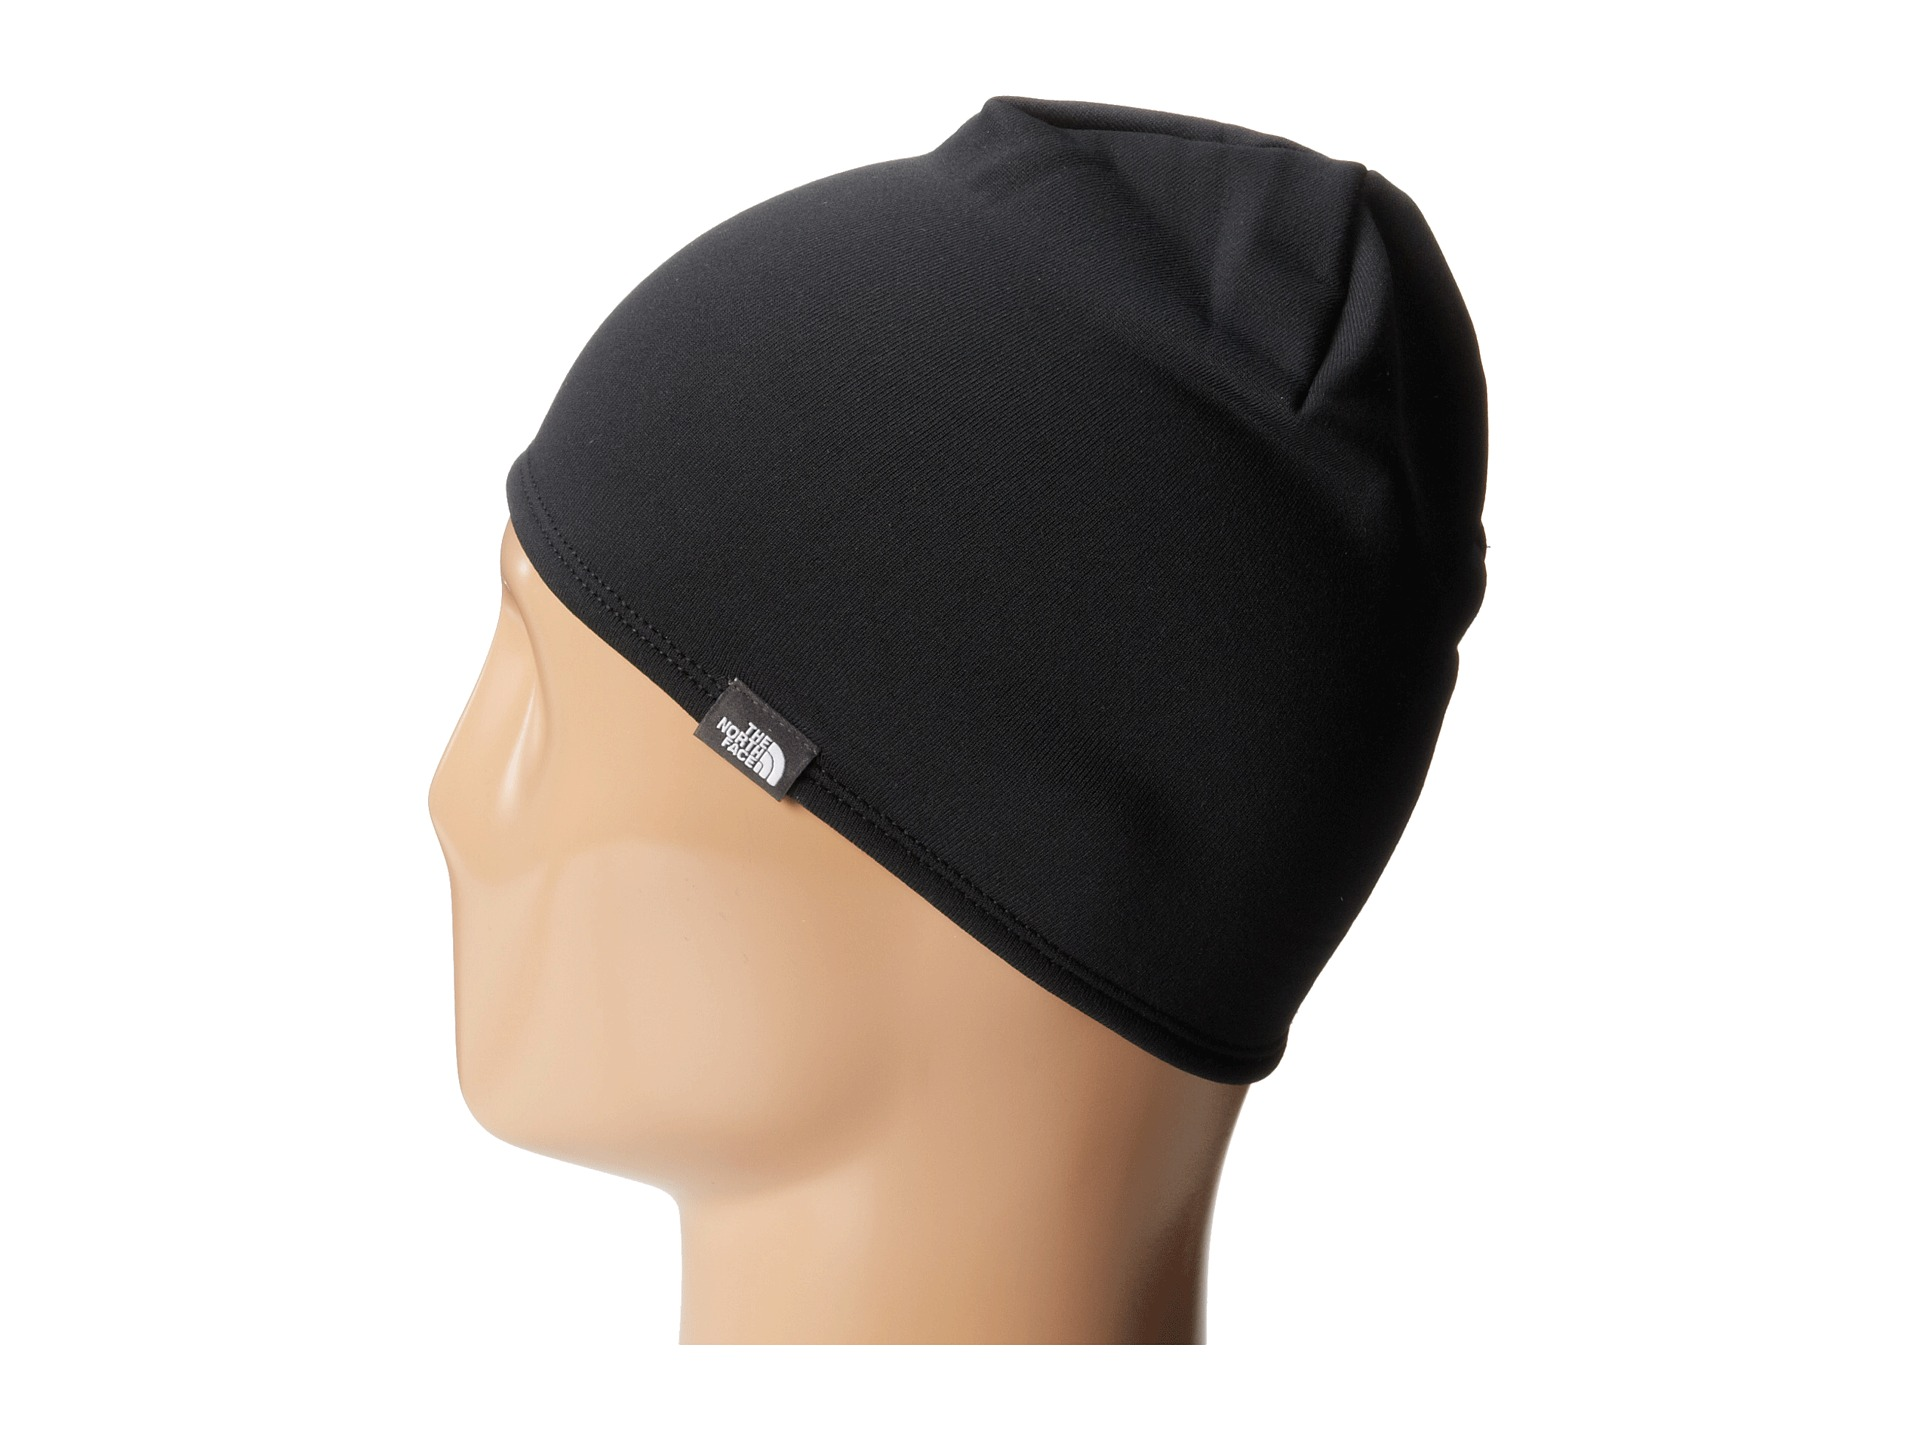 034d10c2a5d north face stocking hat - Marwood VeneerMarwood Veneer